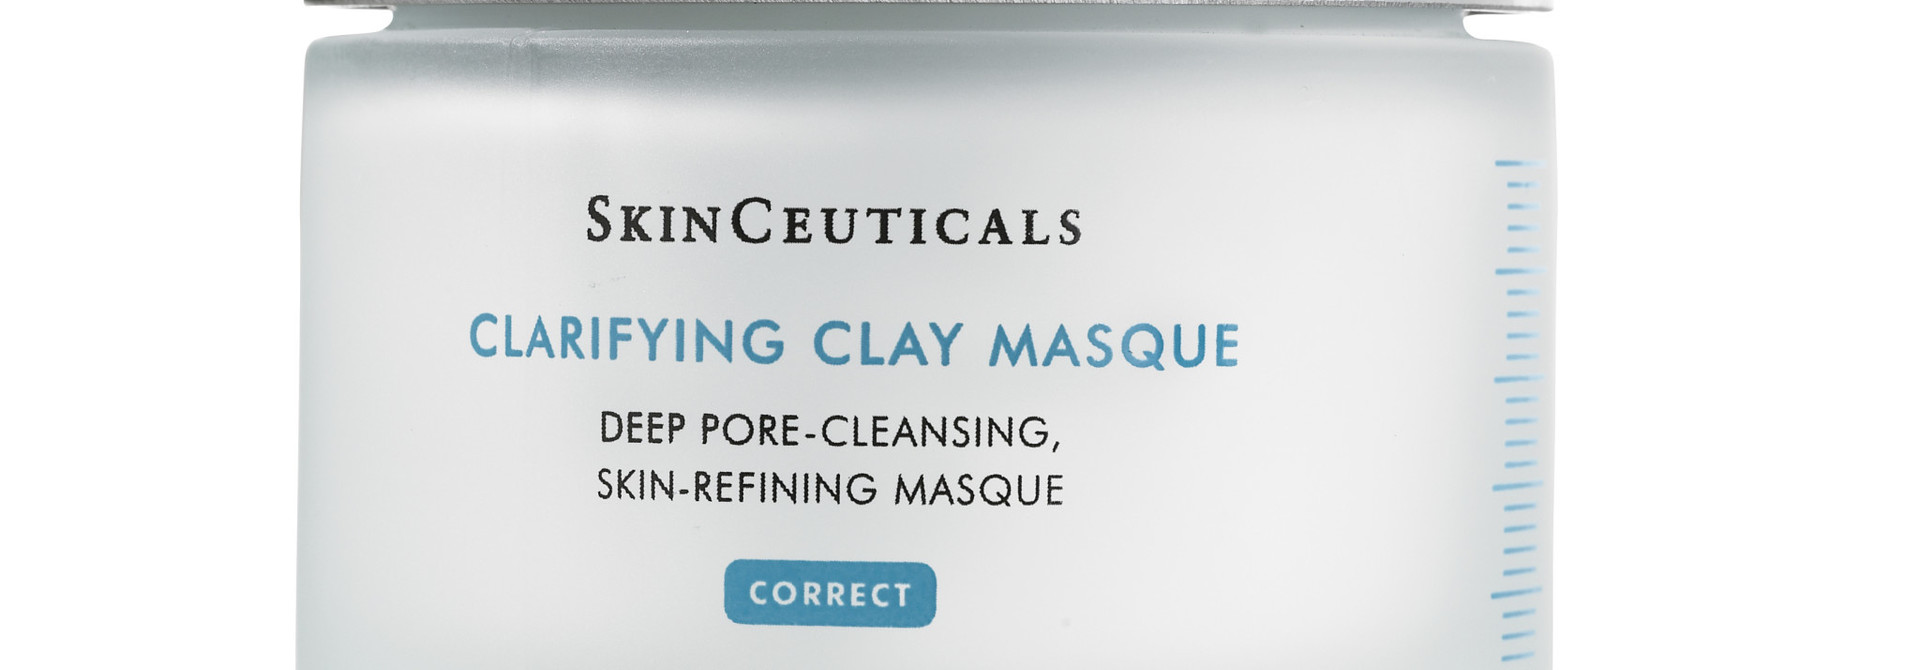 Clarifying Clay Masque - 60ml